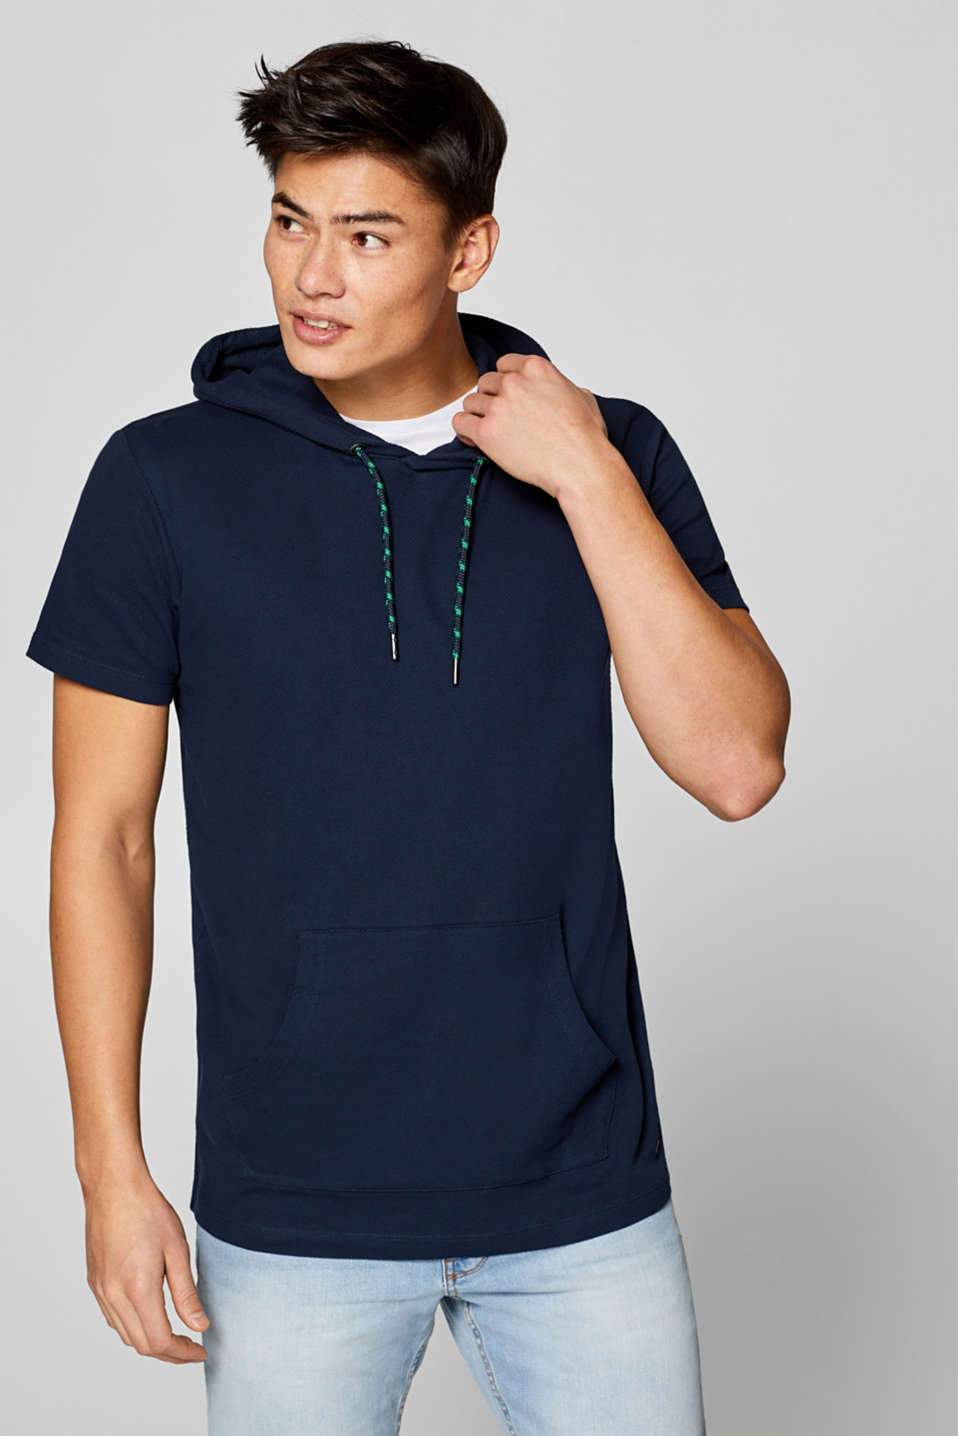 edc - Jersey t-shirt with a hood, 100% cotton